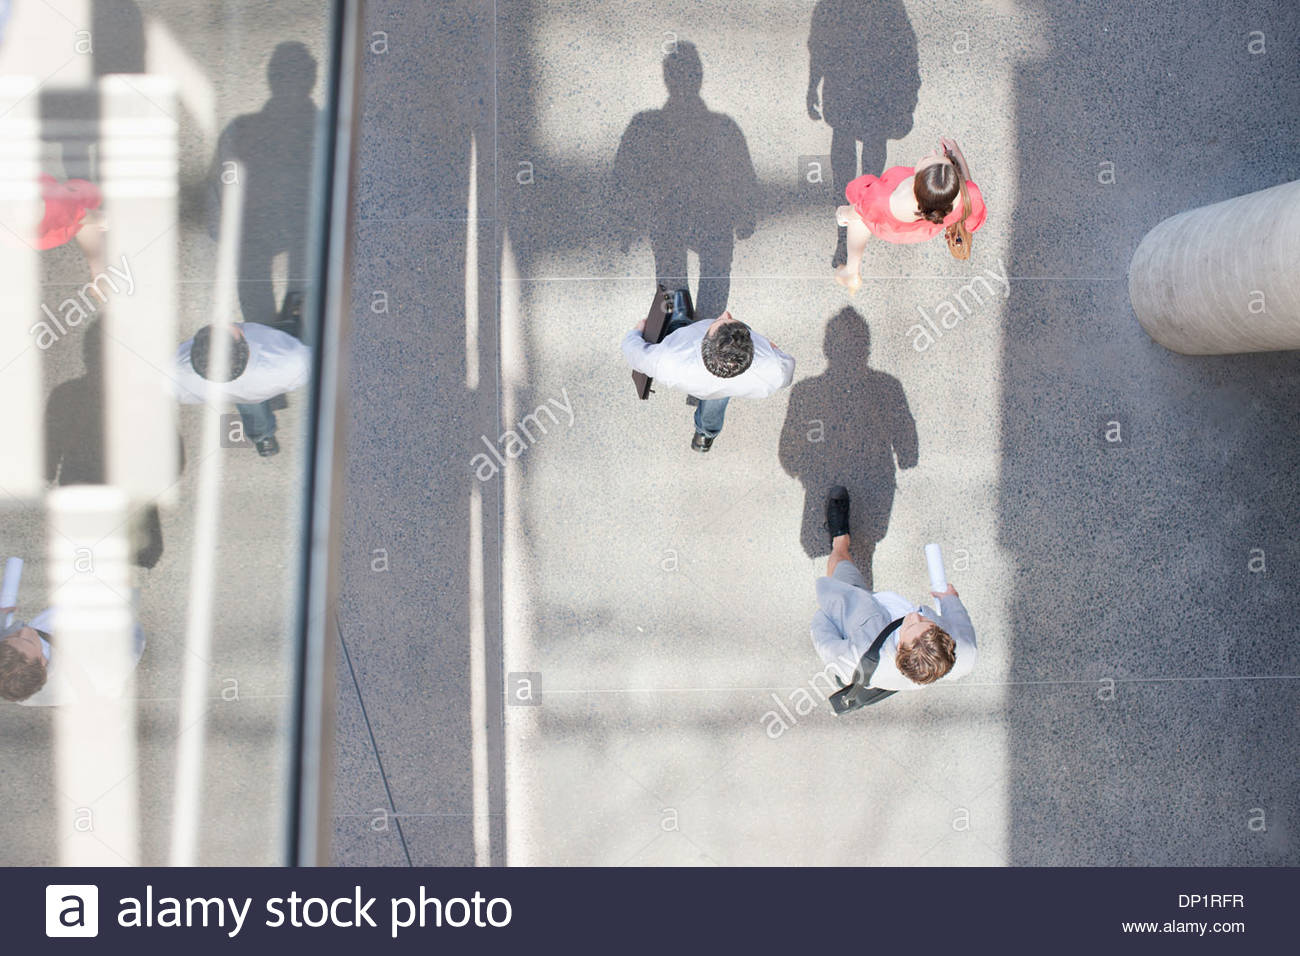 Shadows of people walking from directly above - Stock Image